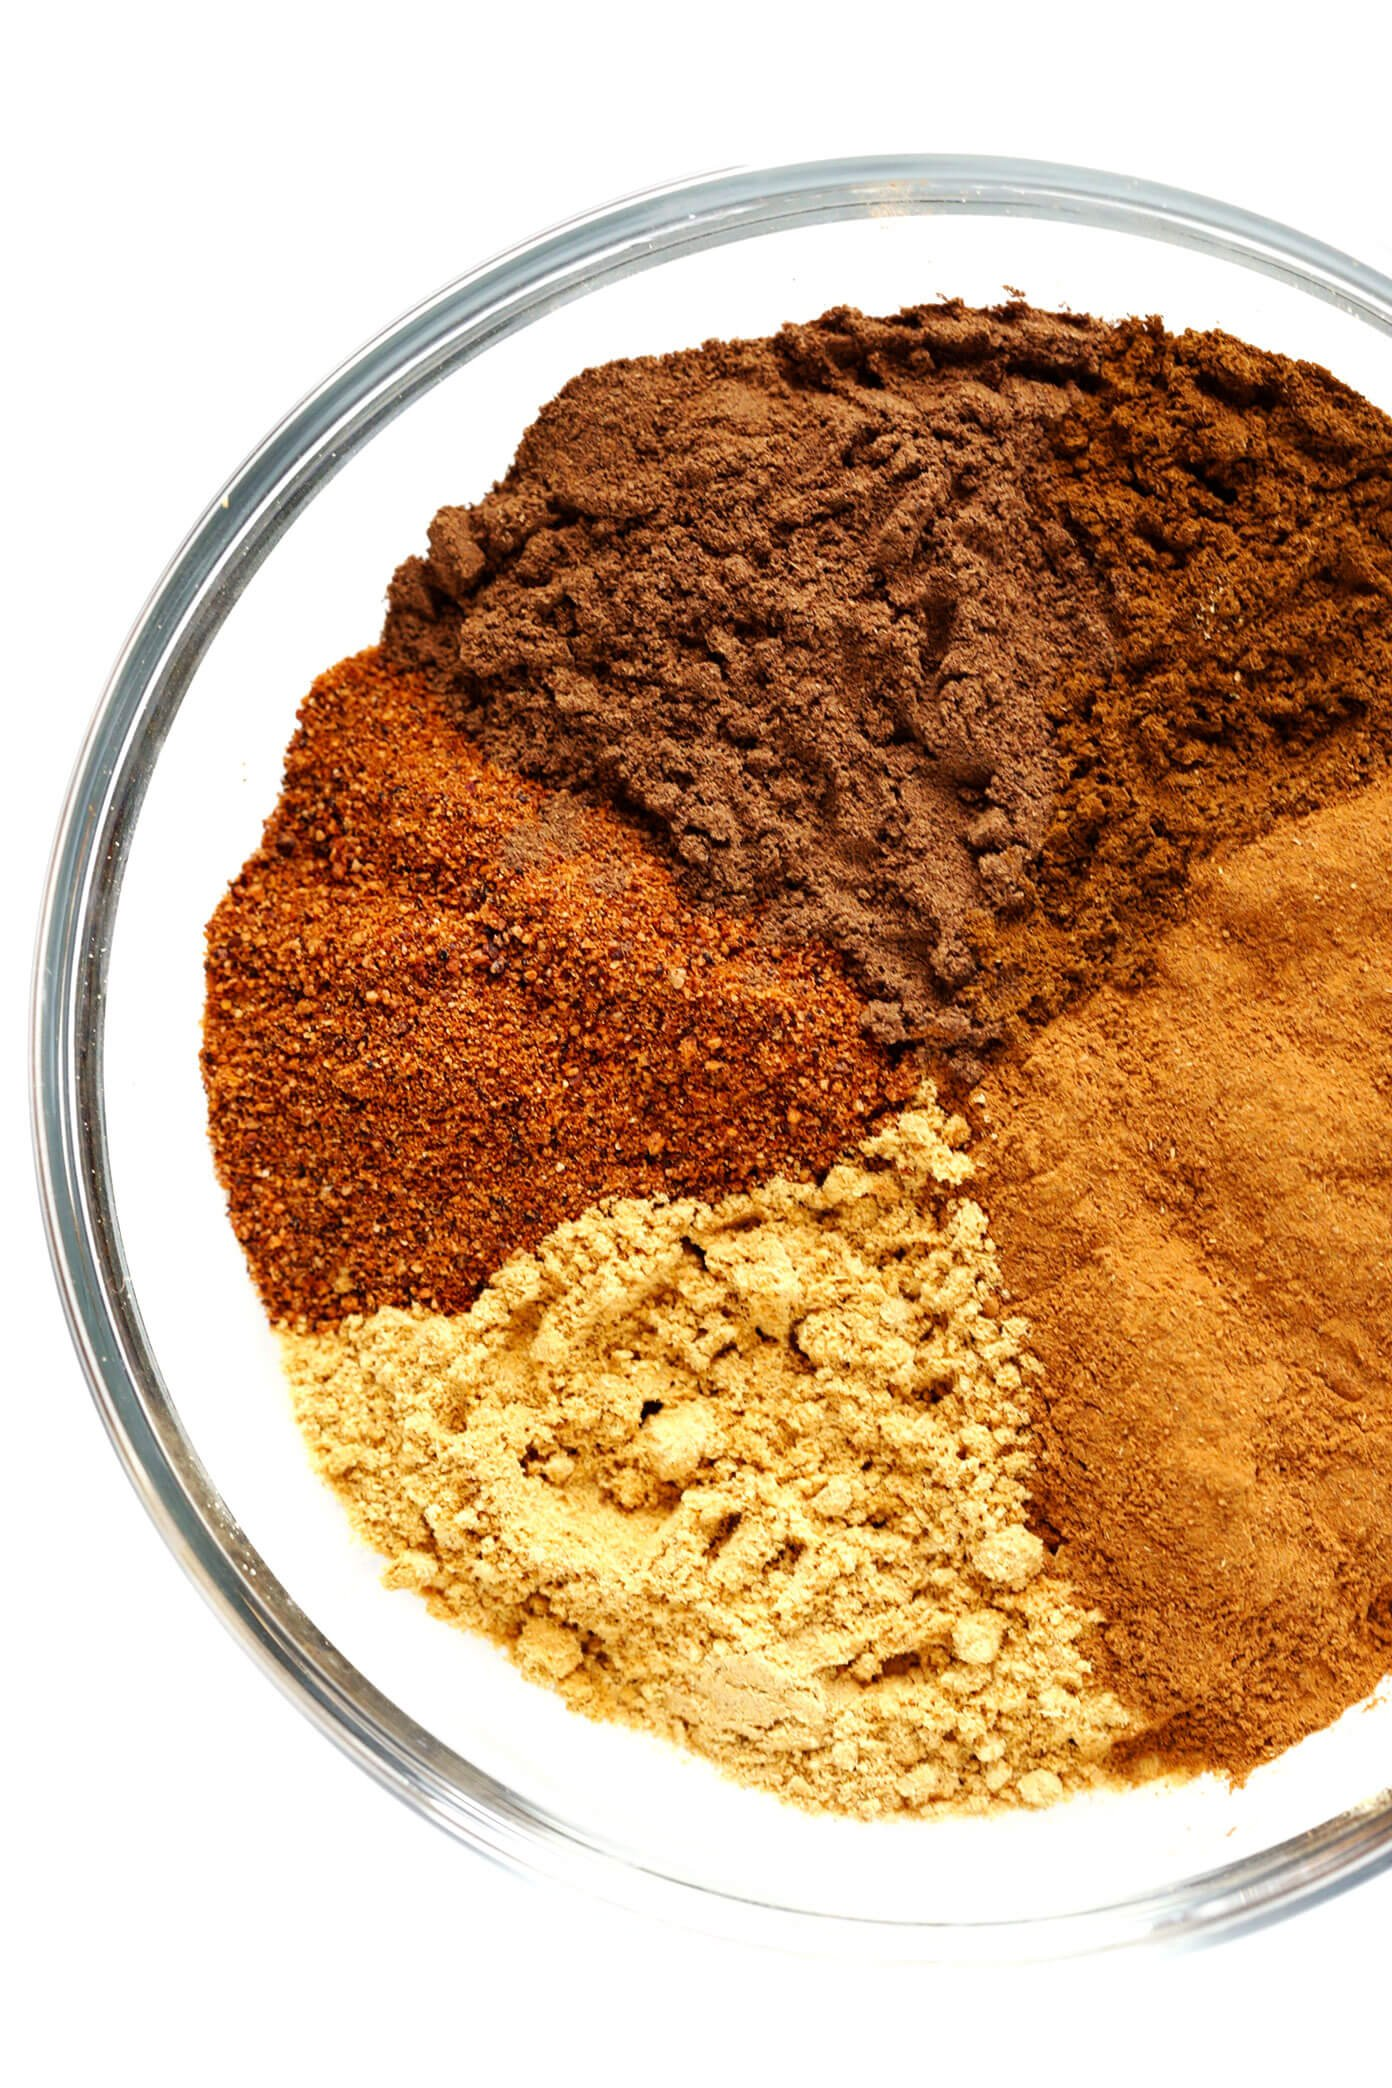 Pumpkin Pie Spice Recipe Ingredients -- Cinnamon, Ginger, Nutmeg, Allspice and Cloves